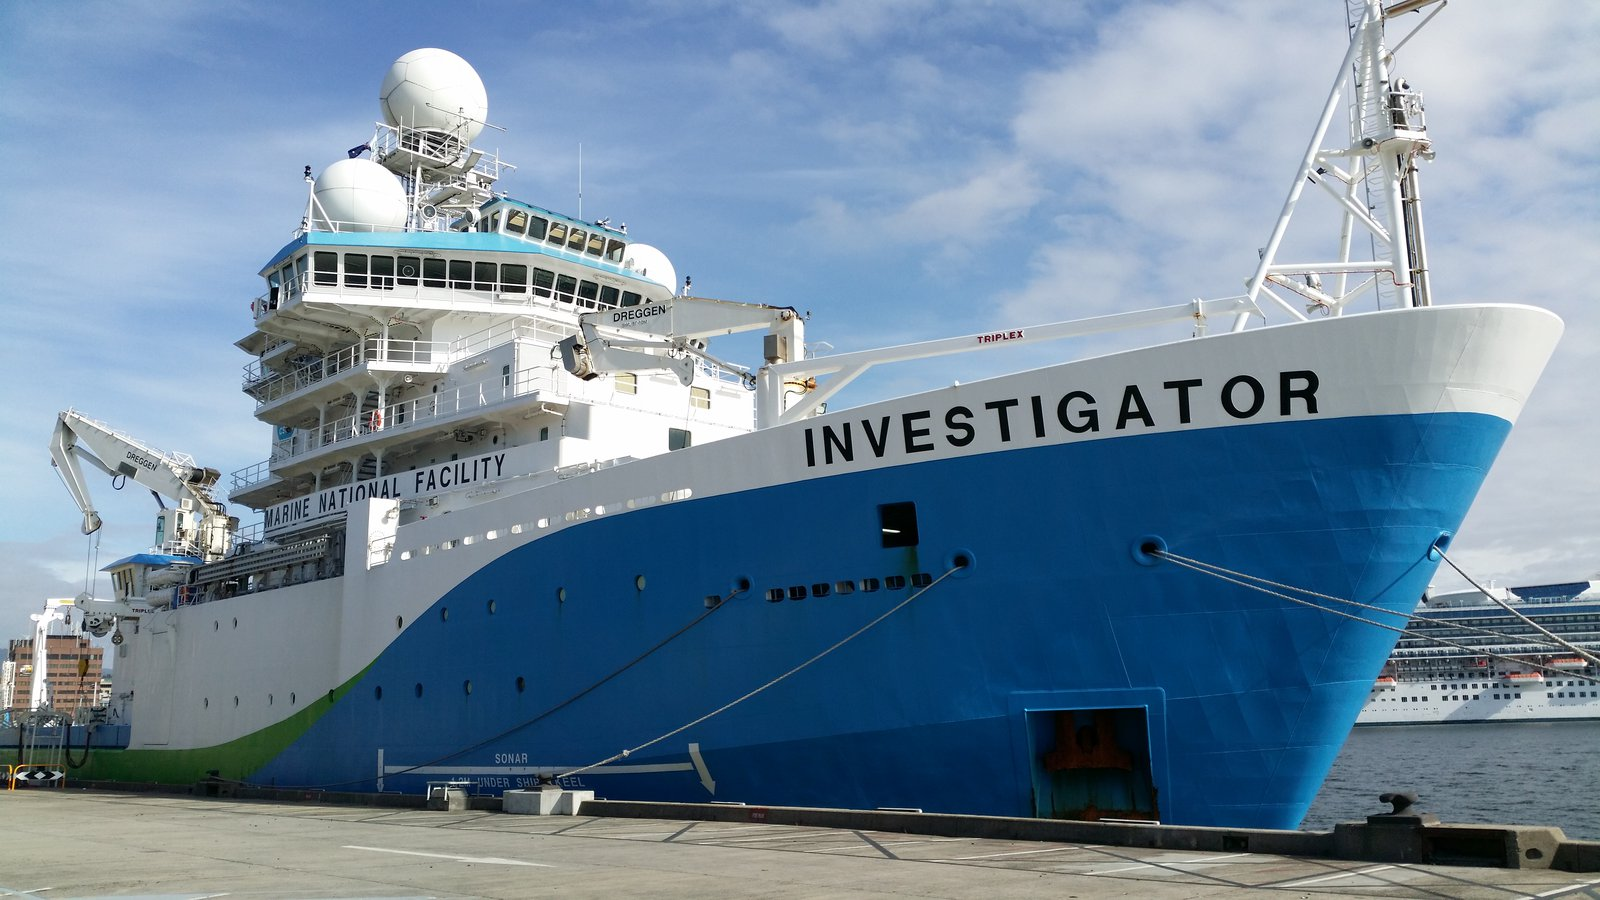 RV Investigator Expedition - November 2018